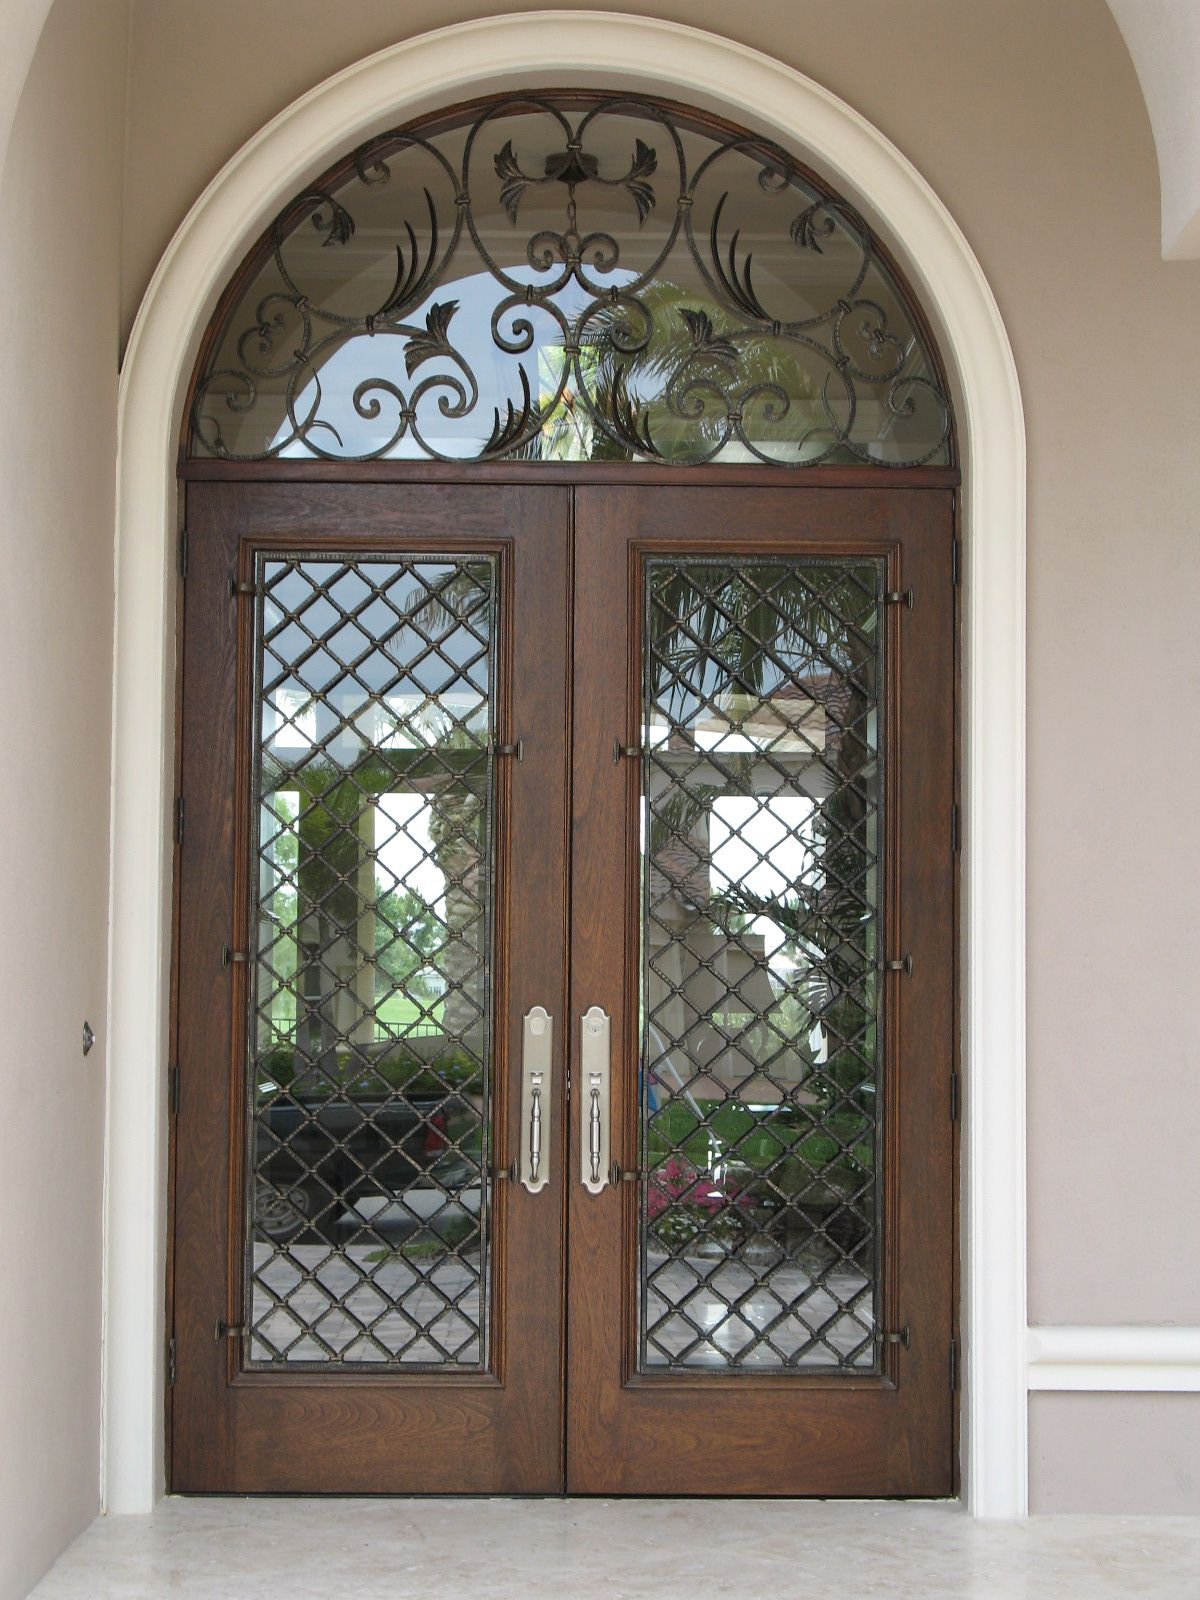 Marvelous front door style ideas exteriors pinterest for French style entry doors